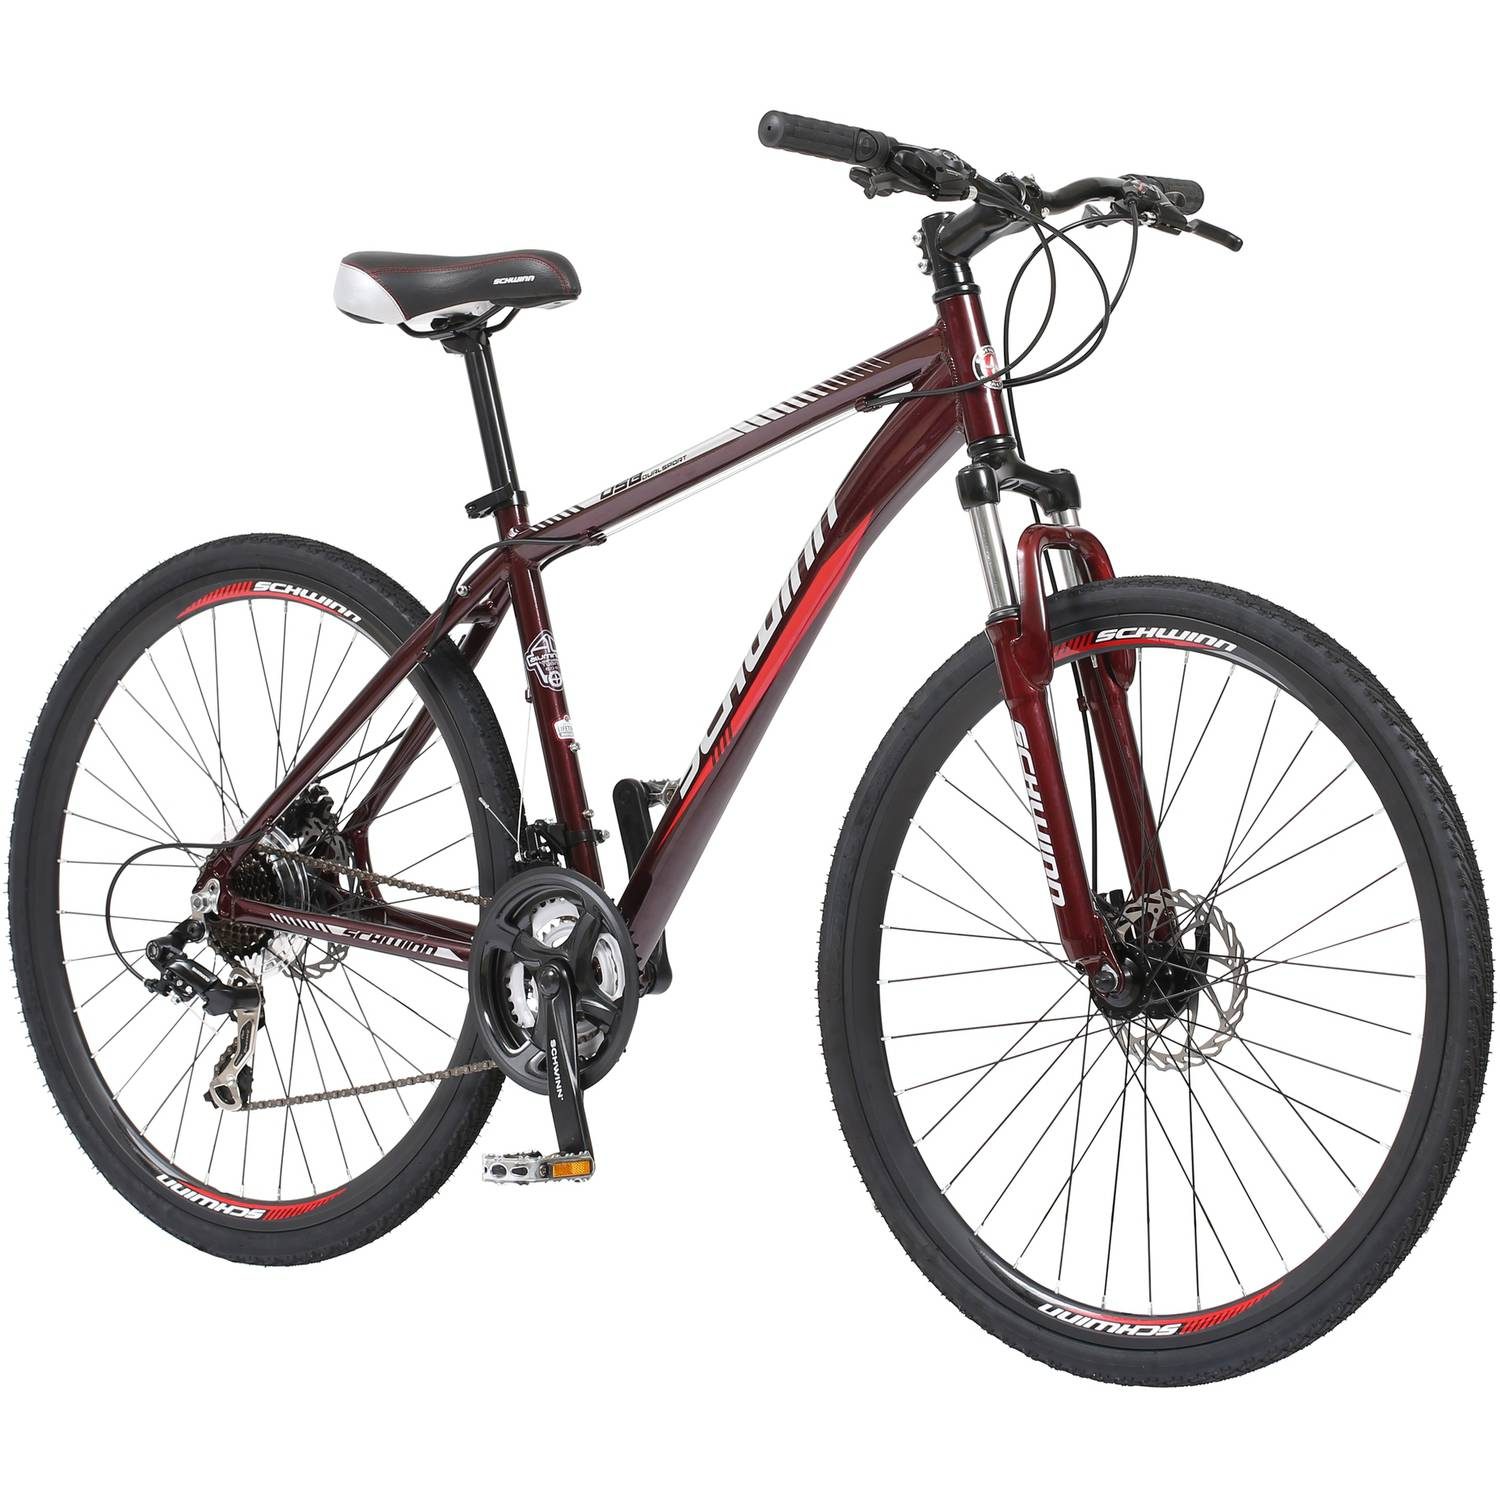 700c Schwinn DSB Men's Bike, Oxblood